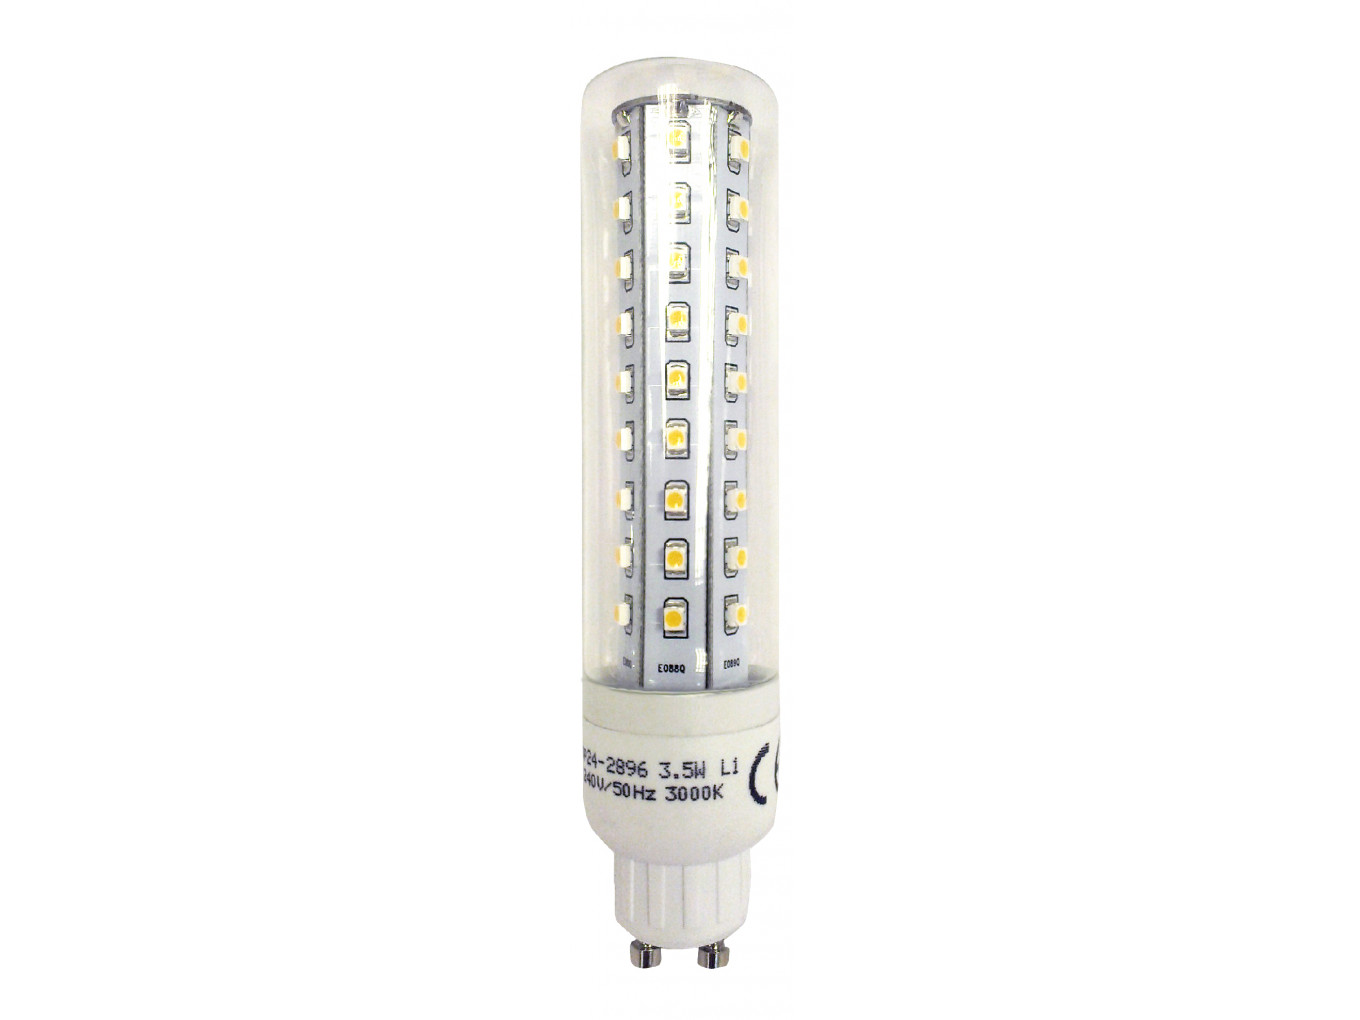 Gu10 Led 8600 L1 Gu10 Tube Lamp Led 3 5w Clear Glass 2896 And 2317